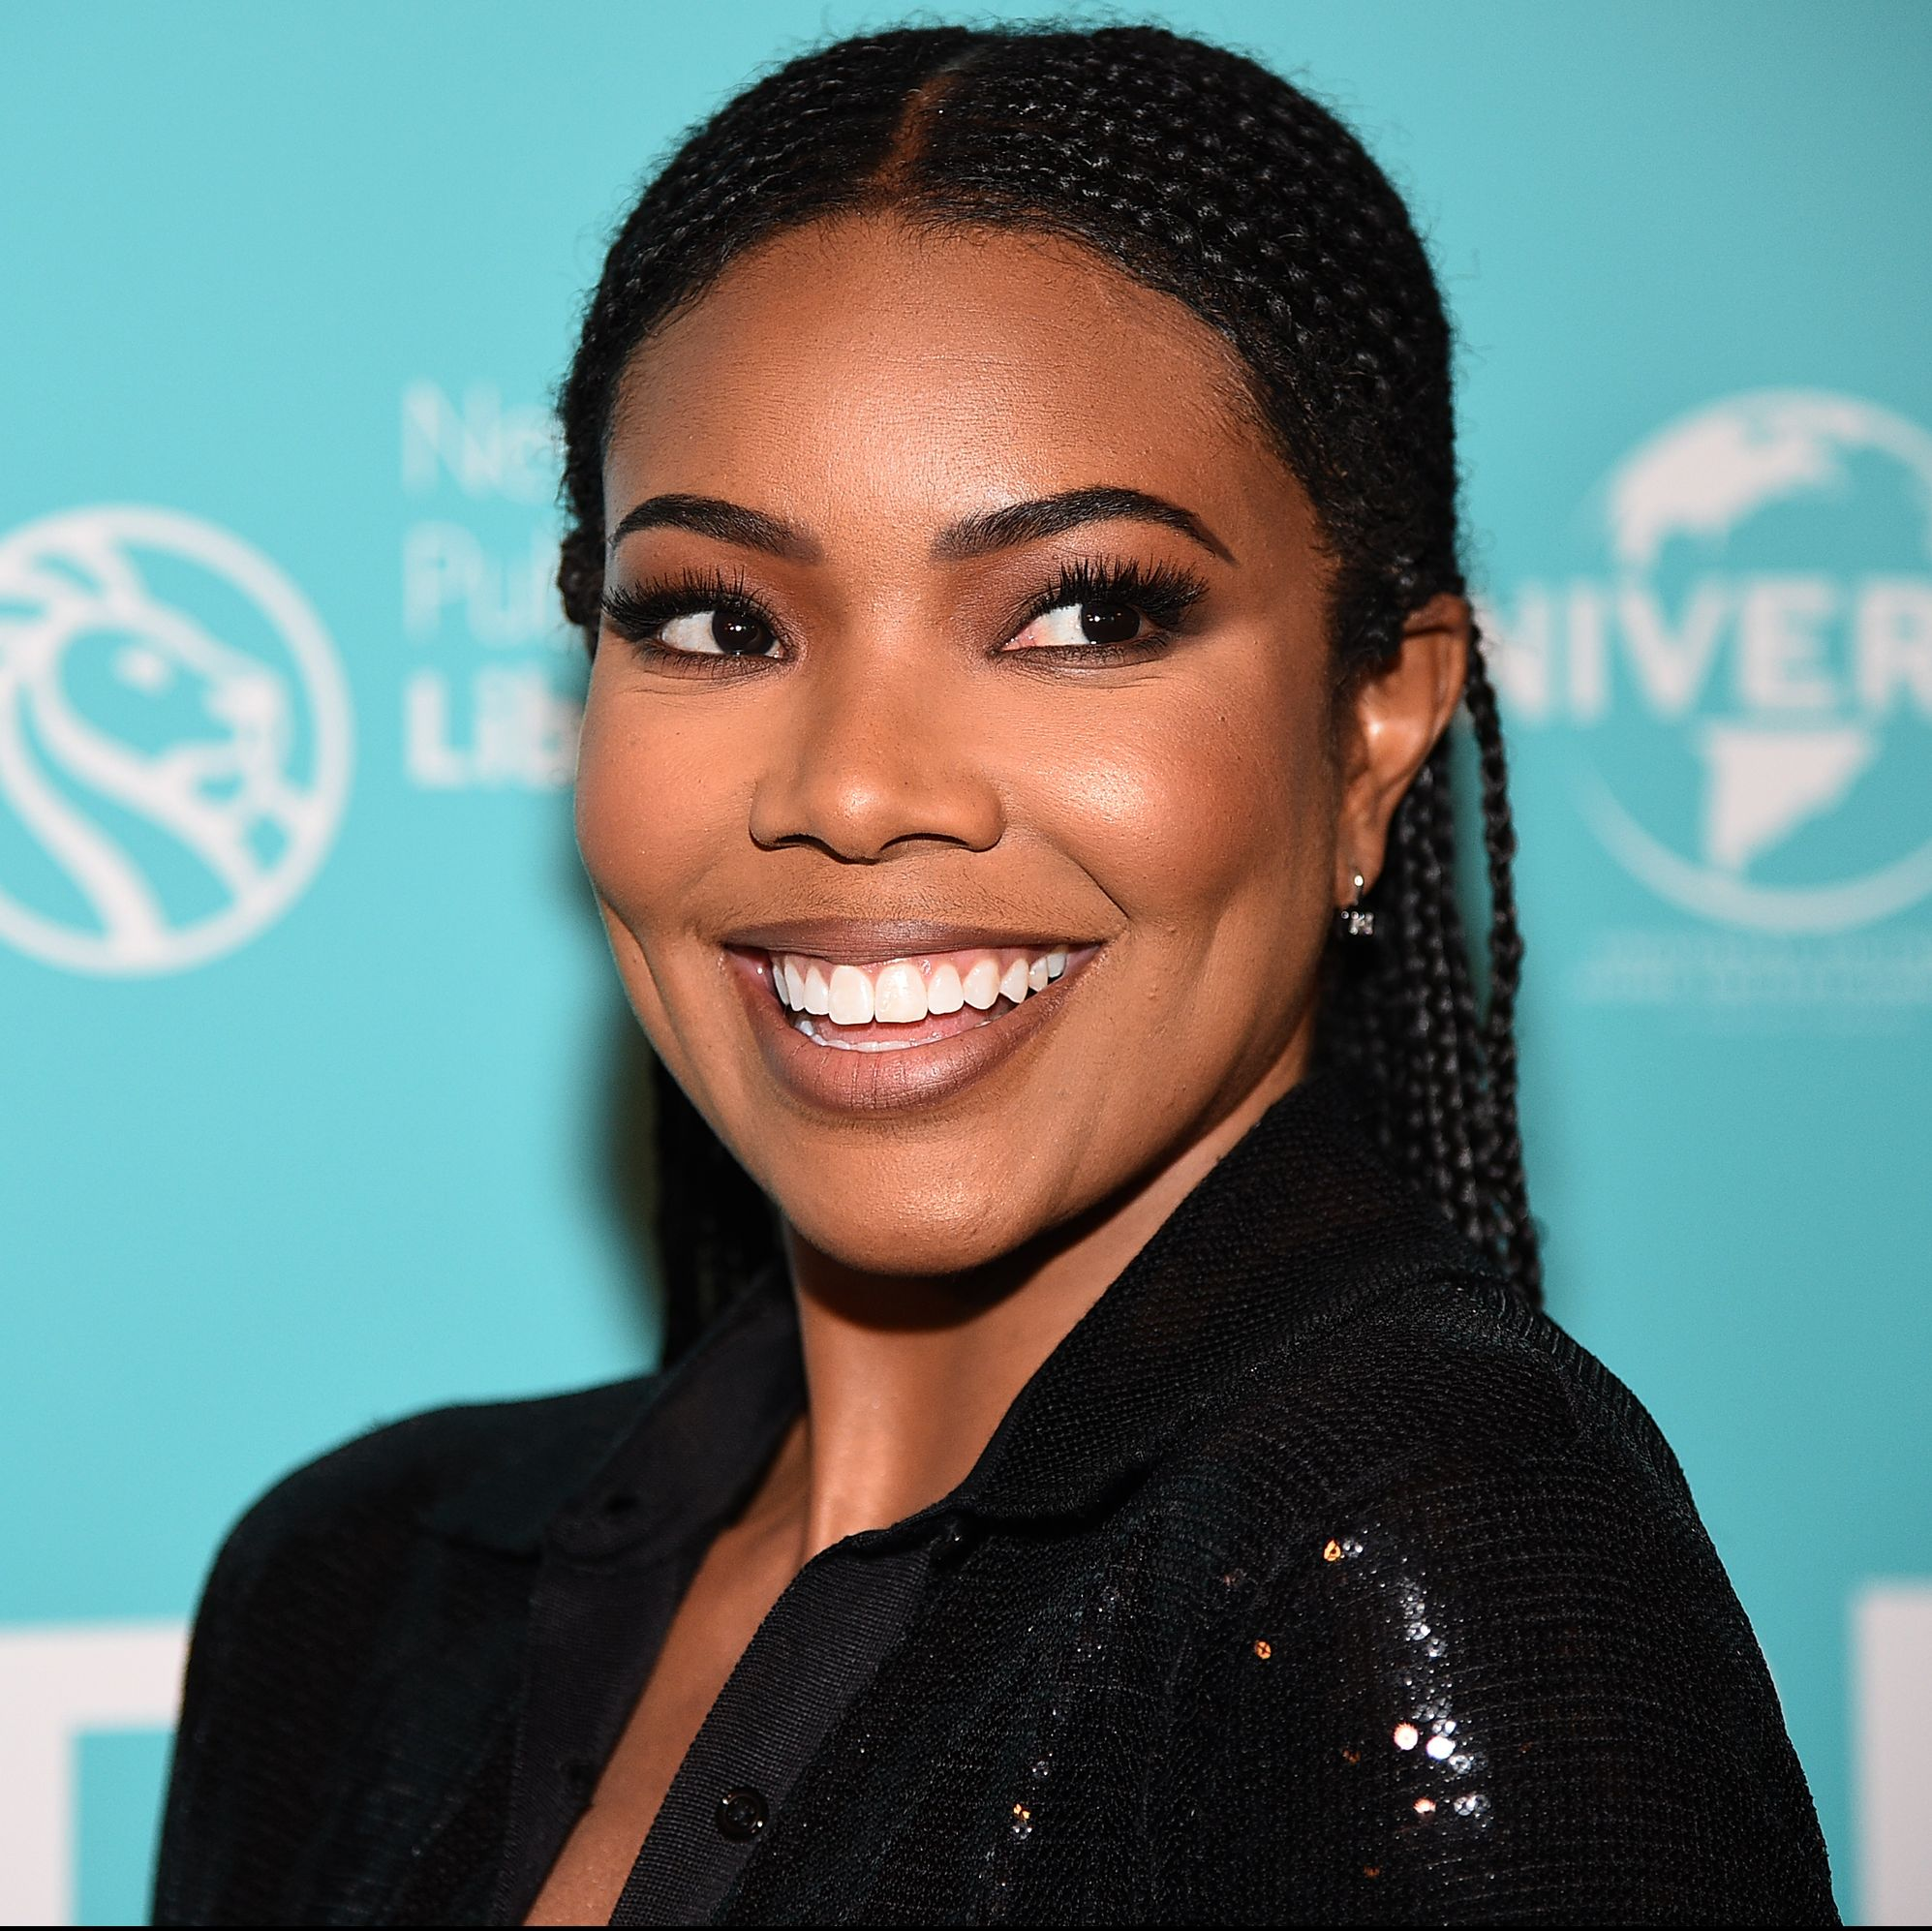 How Gabrielle Union's Skin Looks So Radiant and Youthful at 46